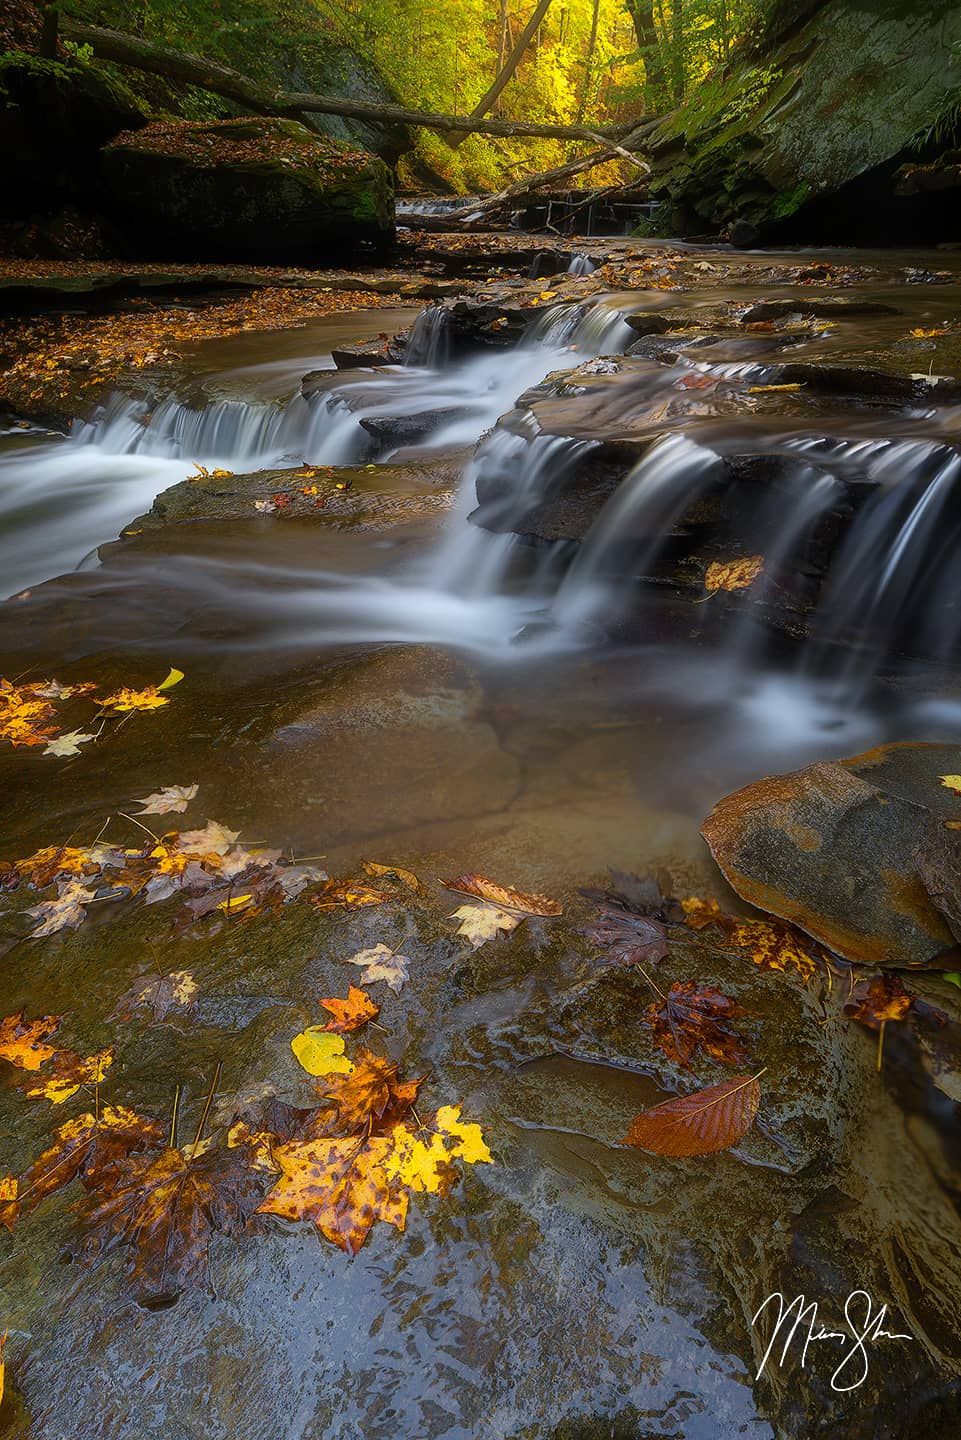 Open edition fine art print of Cuyahoga Valley Autumn from Mickey Shannon Photography. Location: Brandywine Falls, Cuyahoga Valley National Park, Ohio